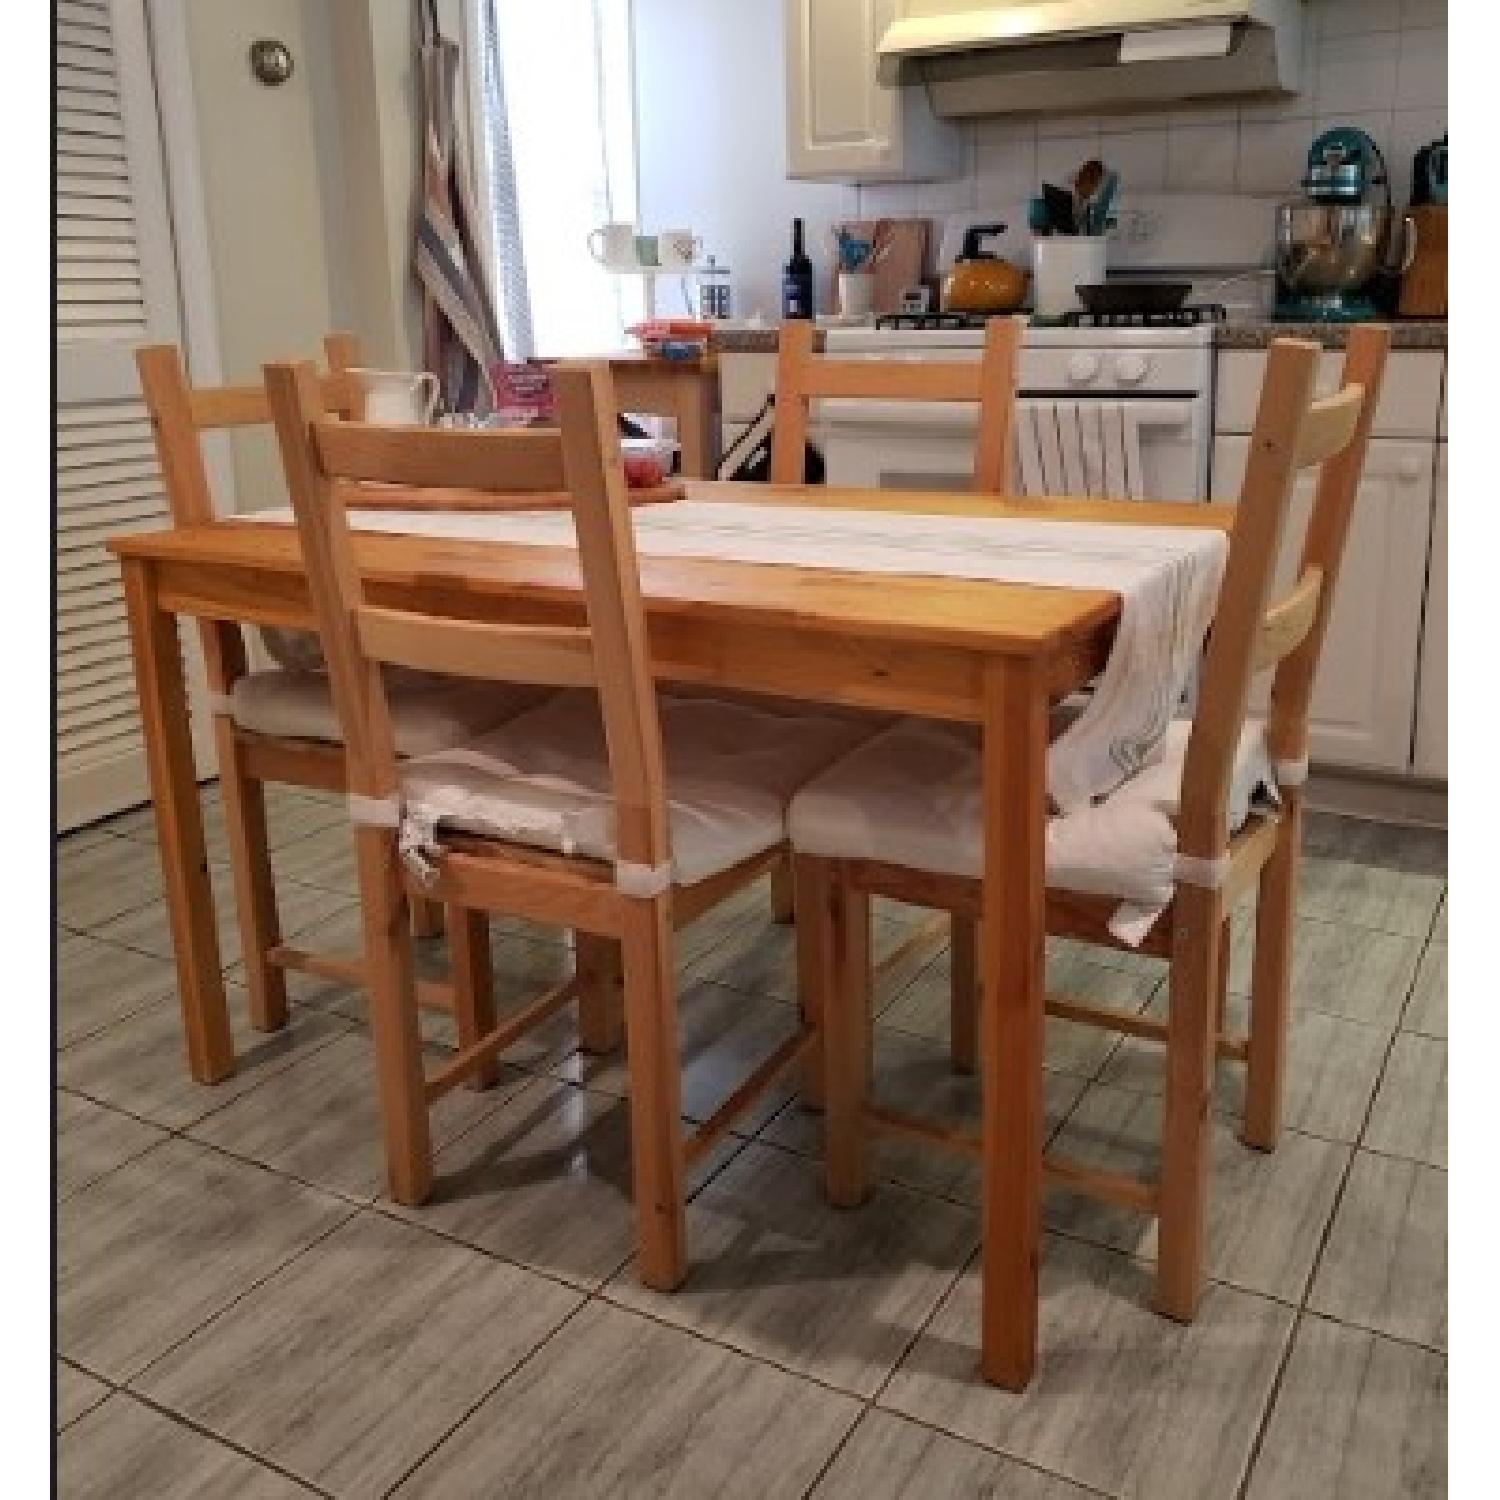 Ikea Ingo Natural Pinewood Dining Table w/ 4 Chairs - image-3